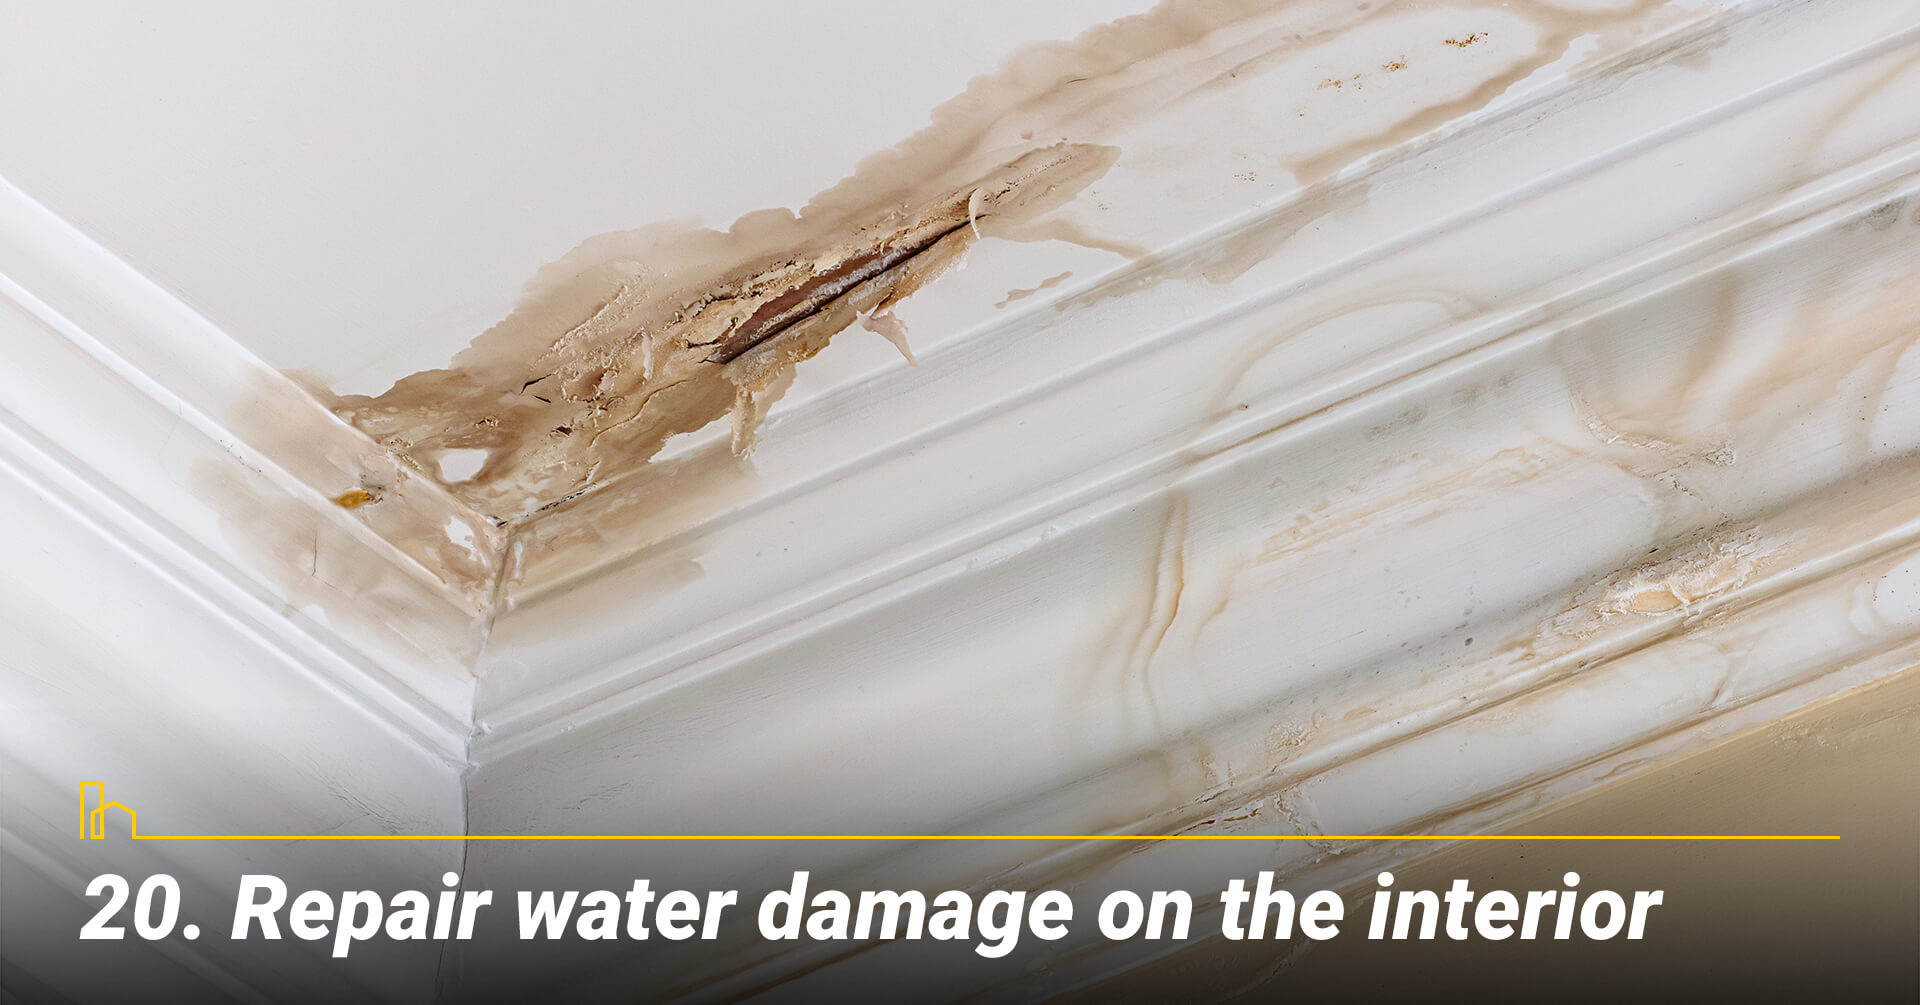 Repair water damage on the interior, fix the interior of the house